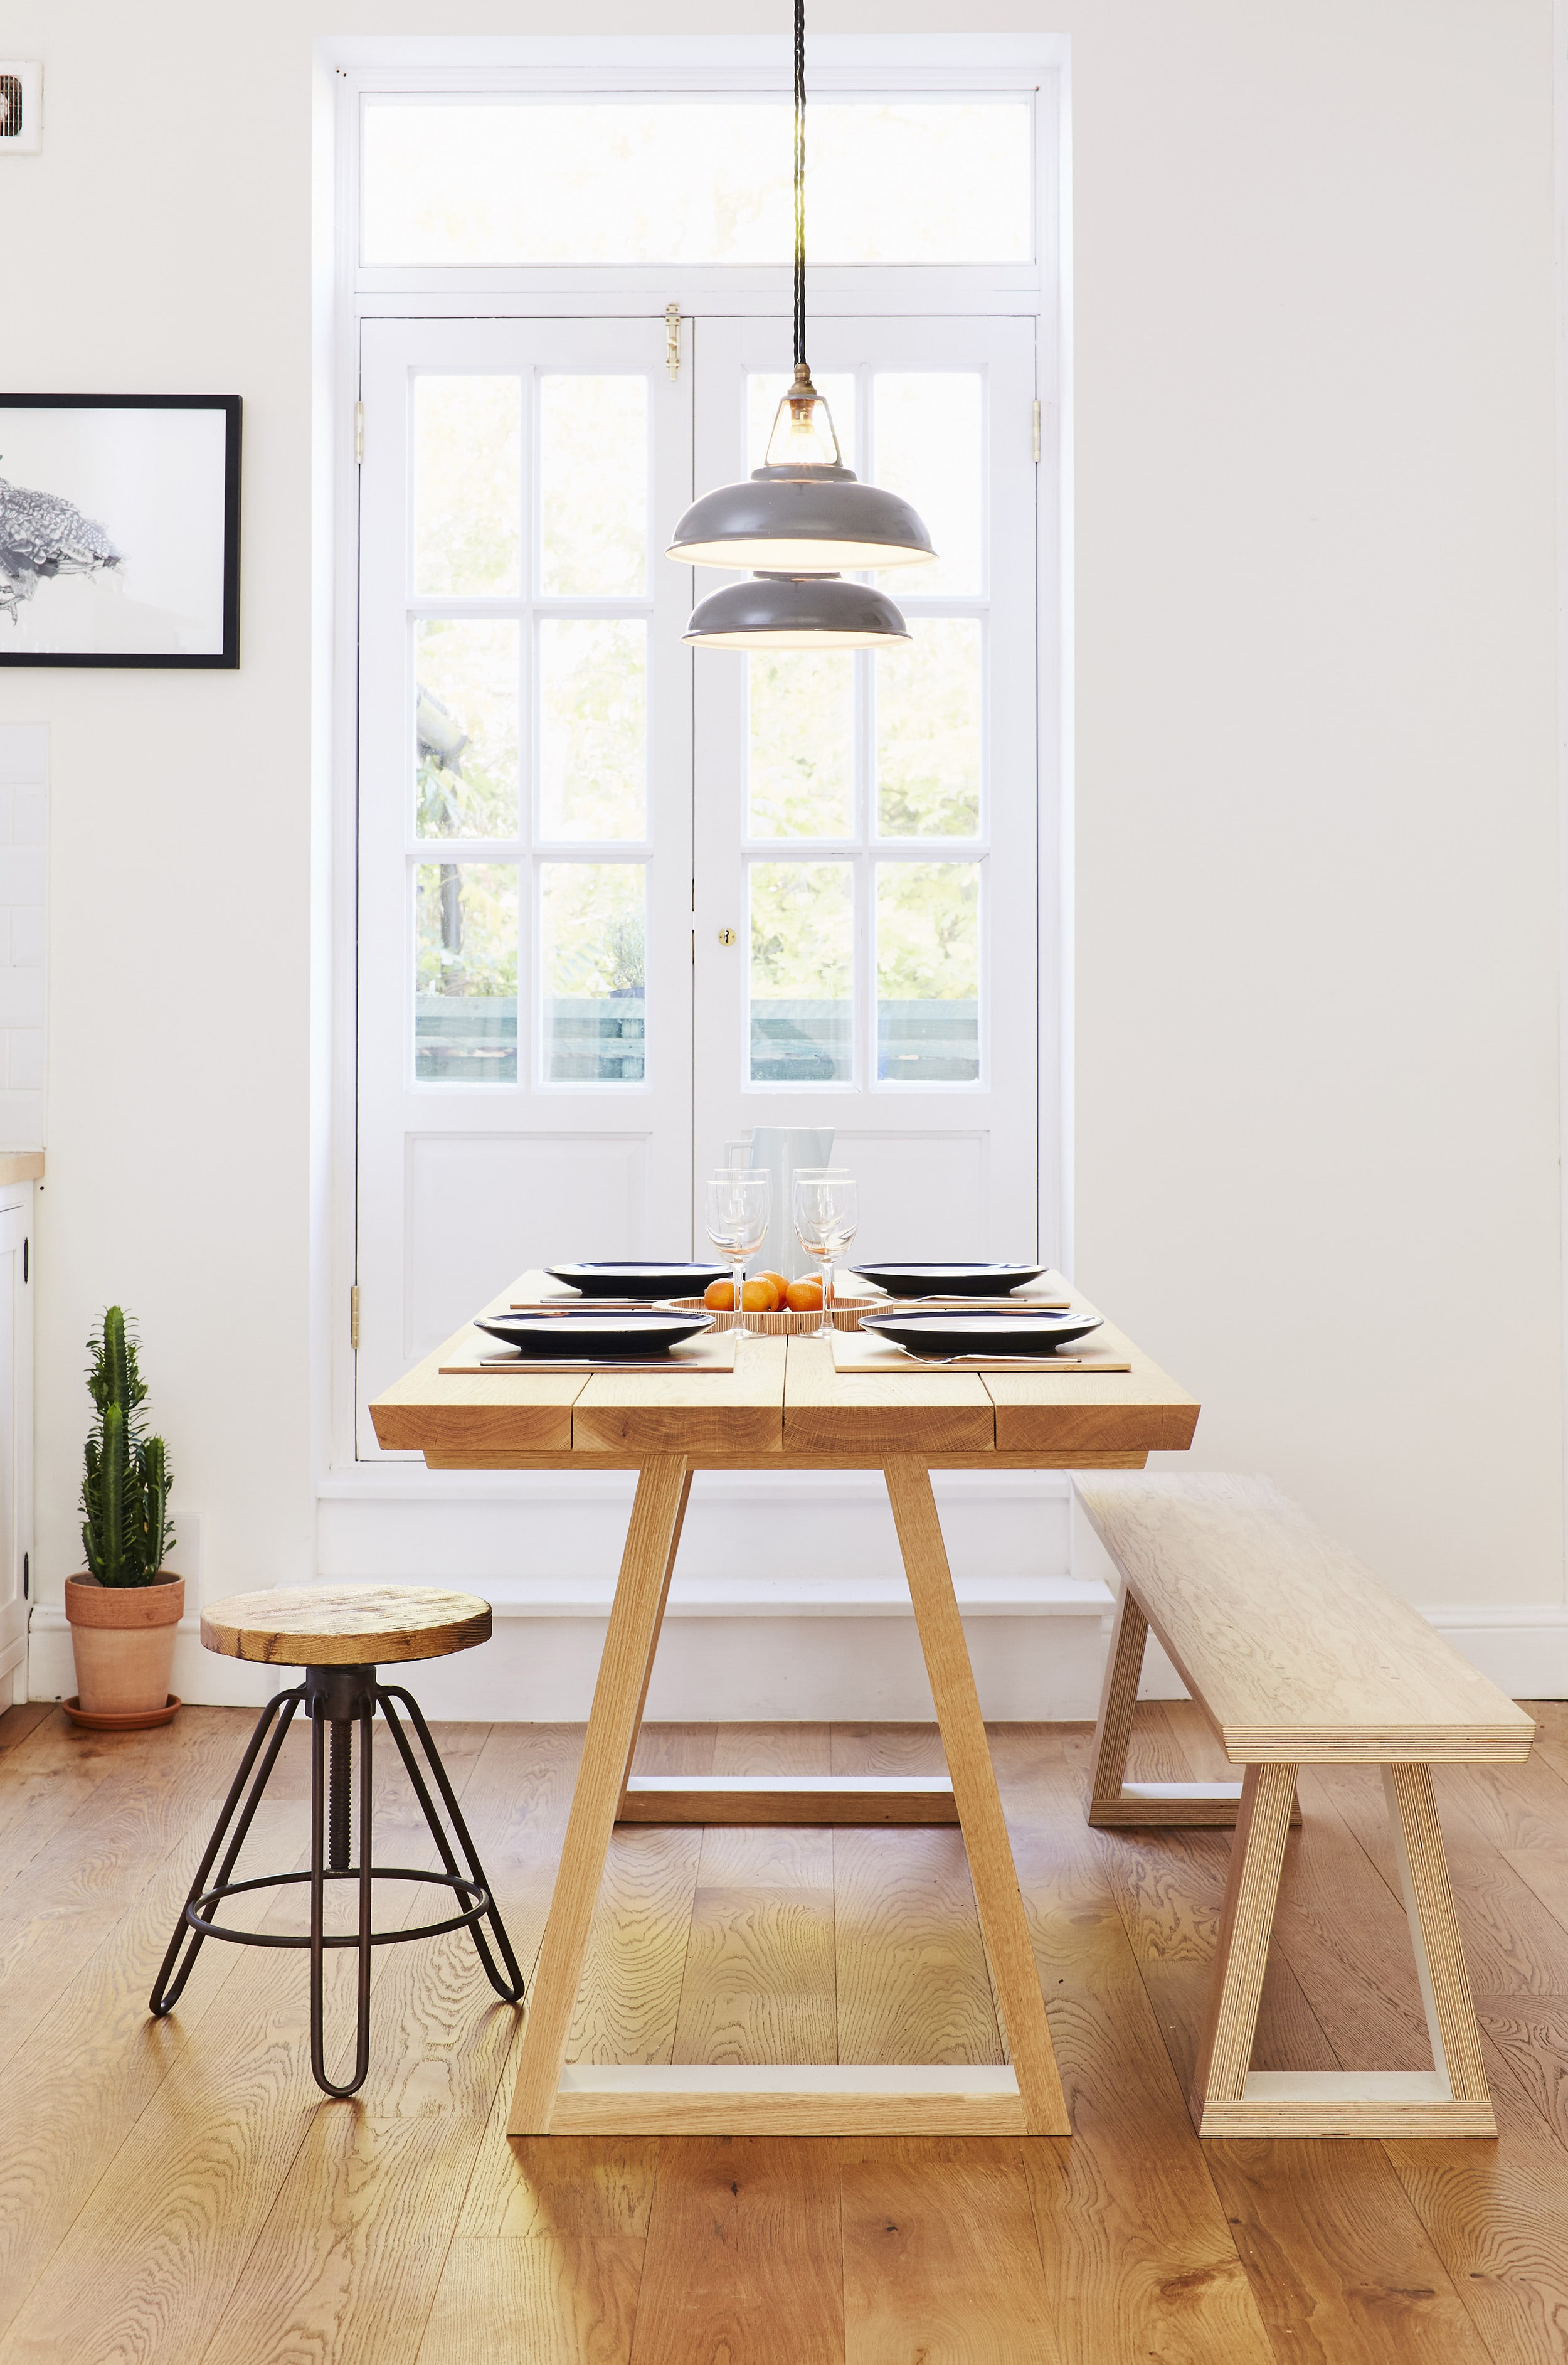 The one of a kind solid oak table and bench made for the kitchen.